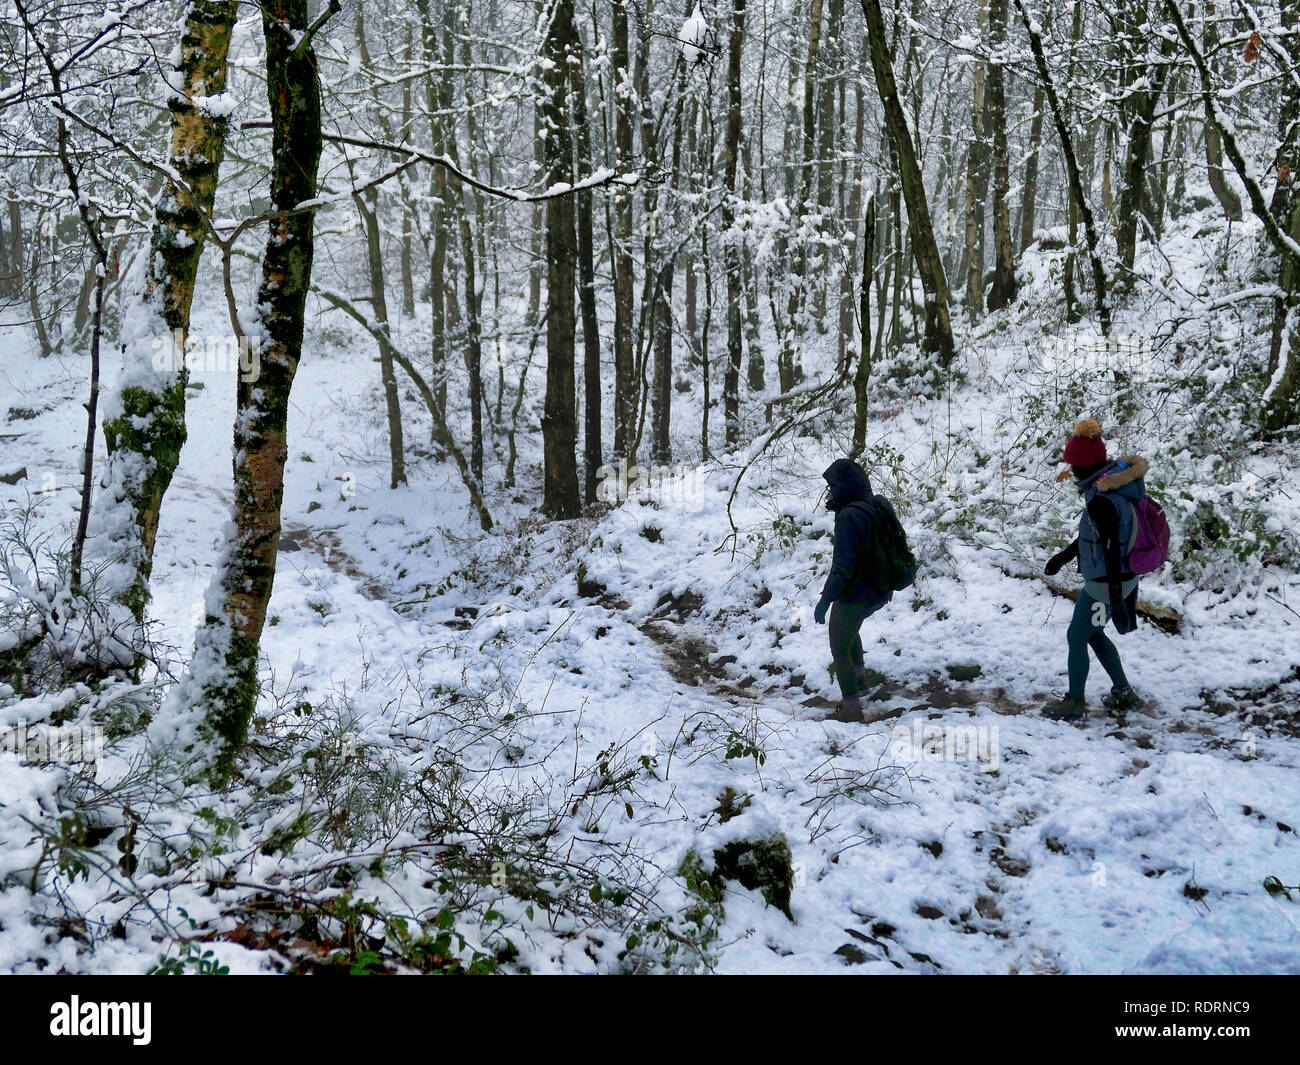 Derbyshire, Peak District National Park, UK, January 2018UK Weather: walkers enjoying the snowy wintery weather Black Rocks, Big Plantation, Derbyshire, Peak District National Park Credit: Doug Blane/Alamy Live News Credit: Doug Blane/Alamy Live News Stock Photo